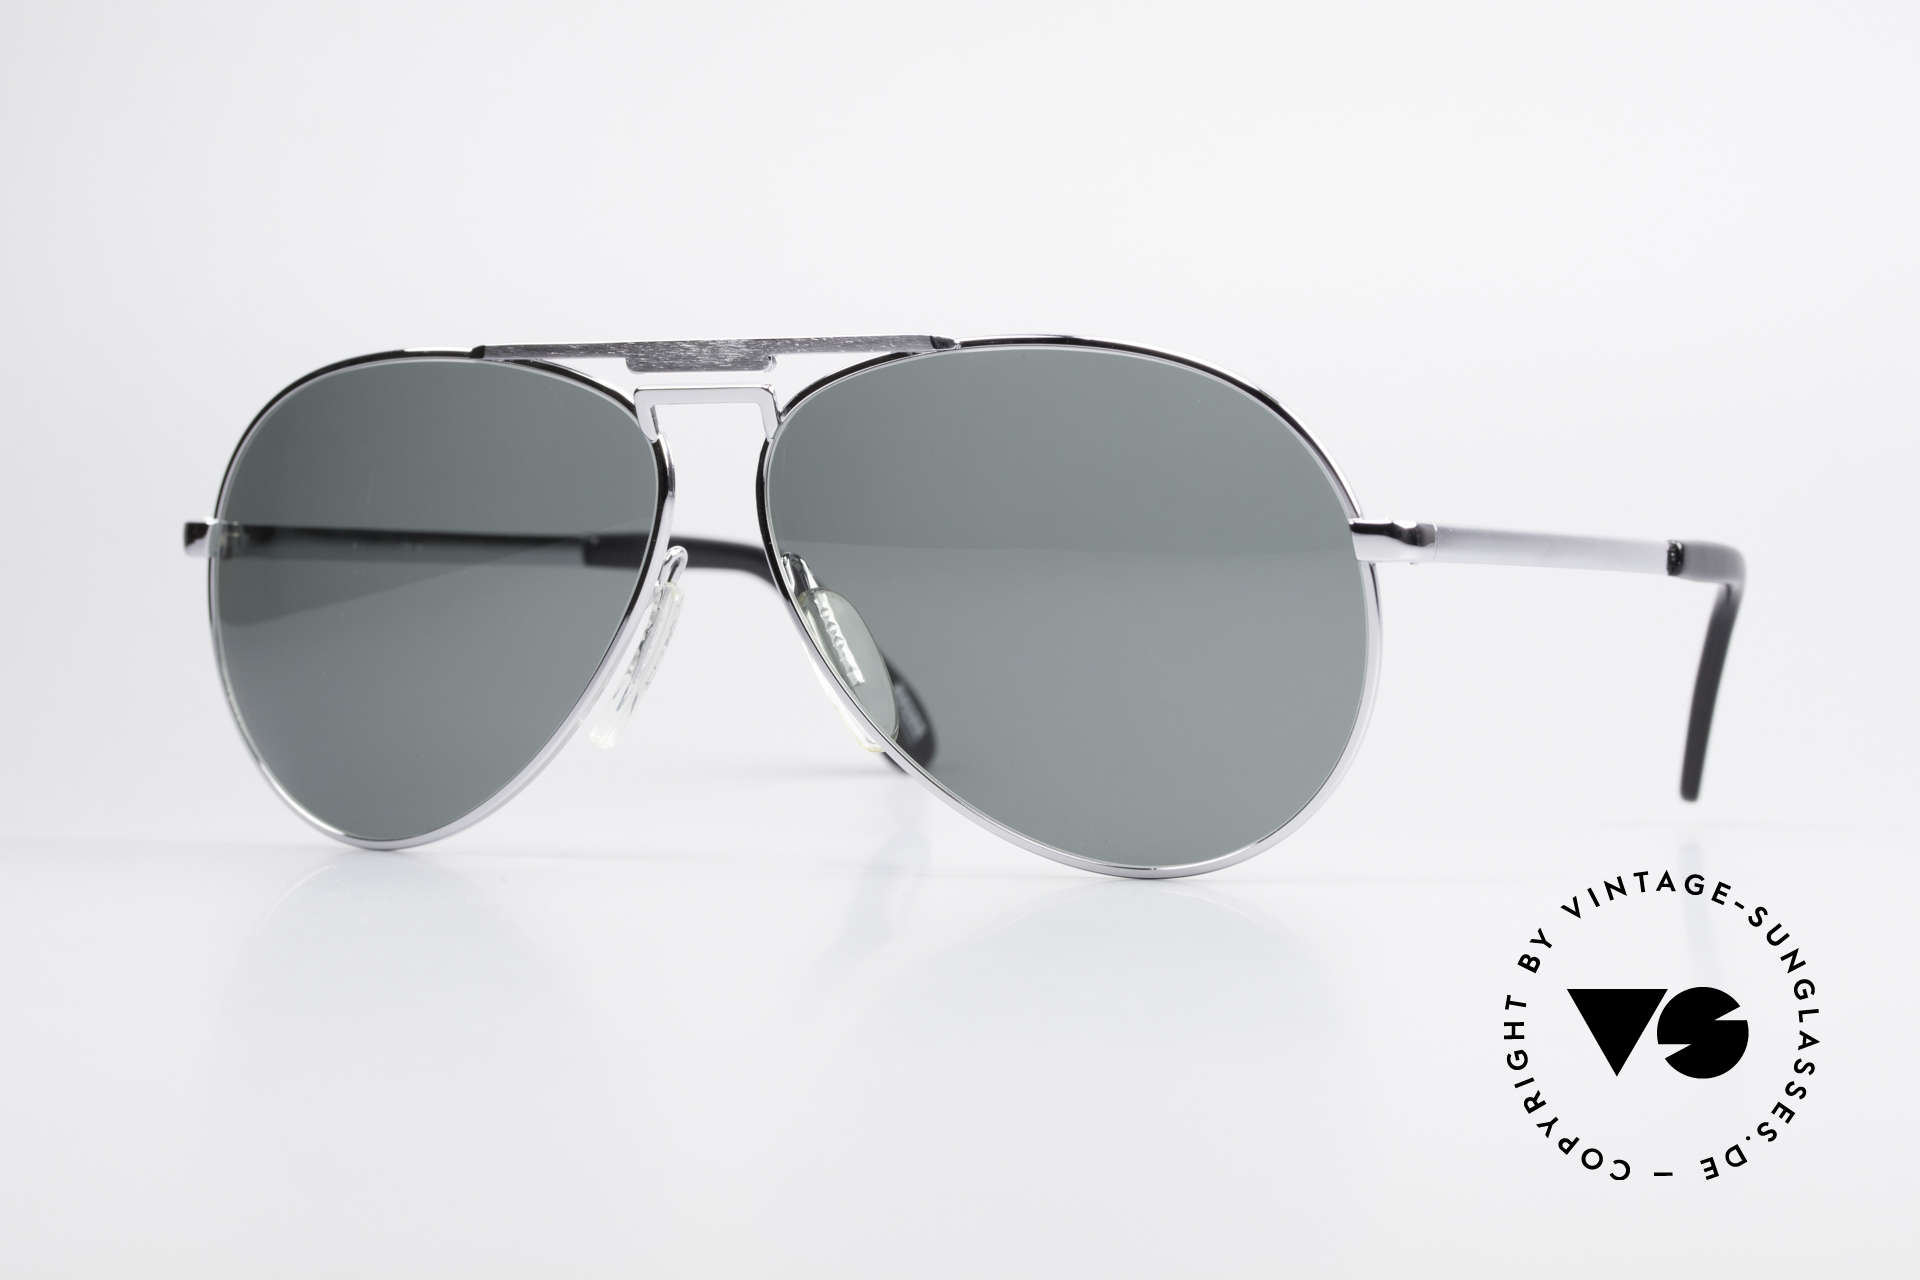 Zeiss 9075 XXL Vintage Men's Sunglasses, original Carl ZEISS sunglasses from the early 1980's, Made for Men